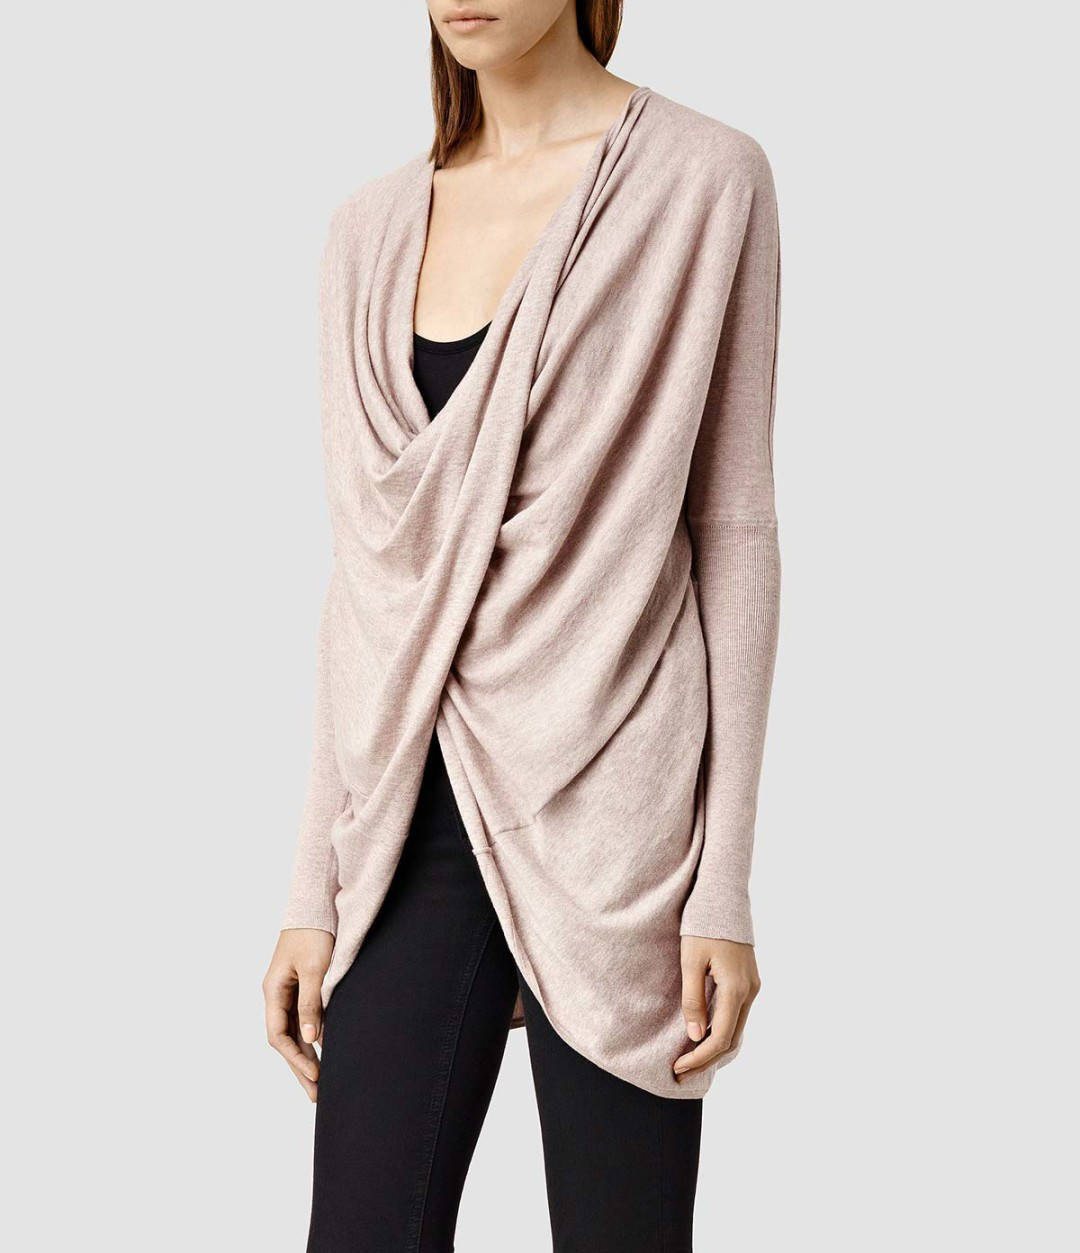 Crushing on blush pink - Itat shrug A;l Saints Usa found at kraft&mint